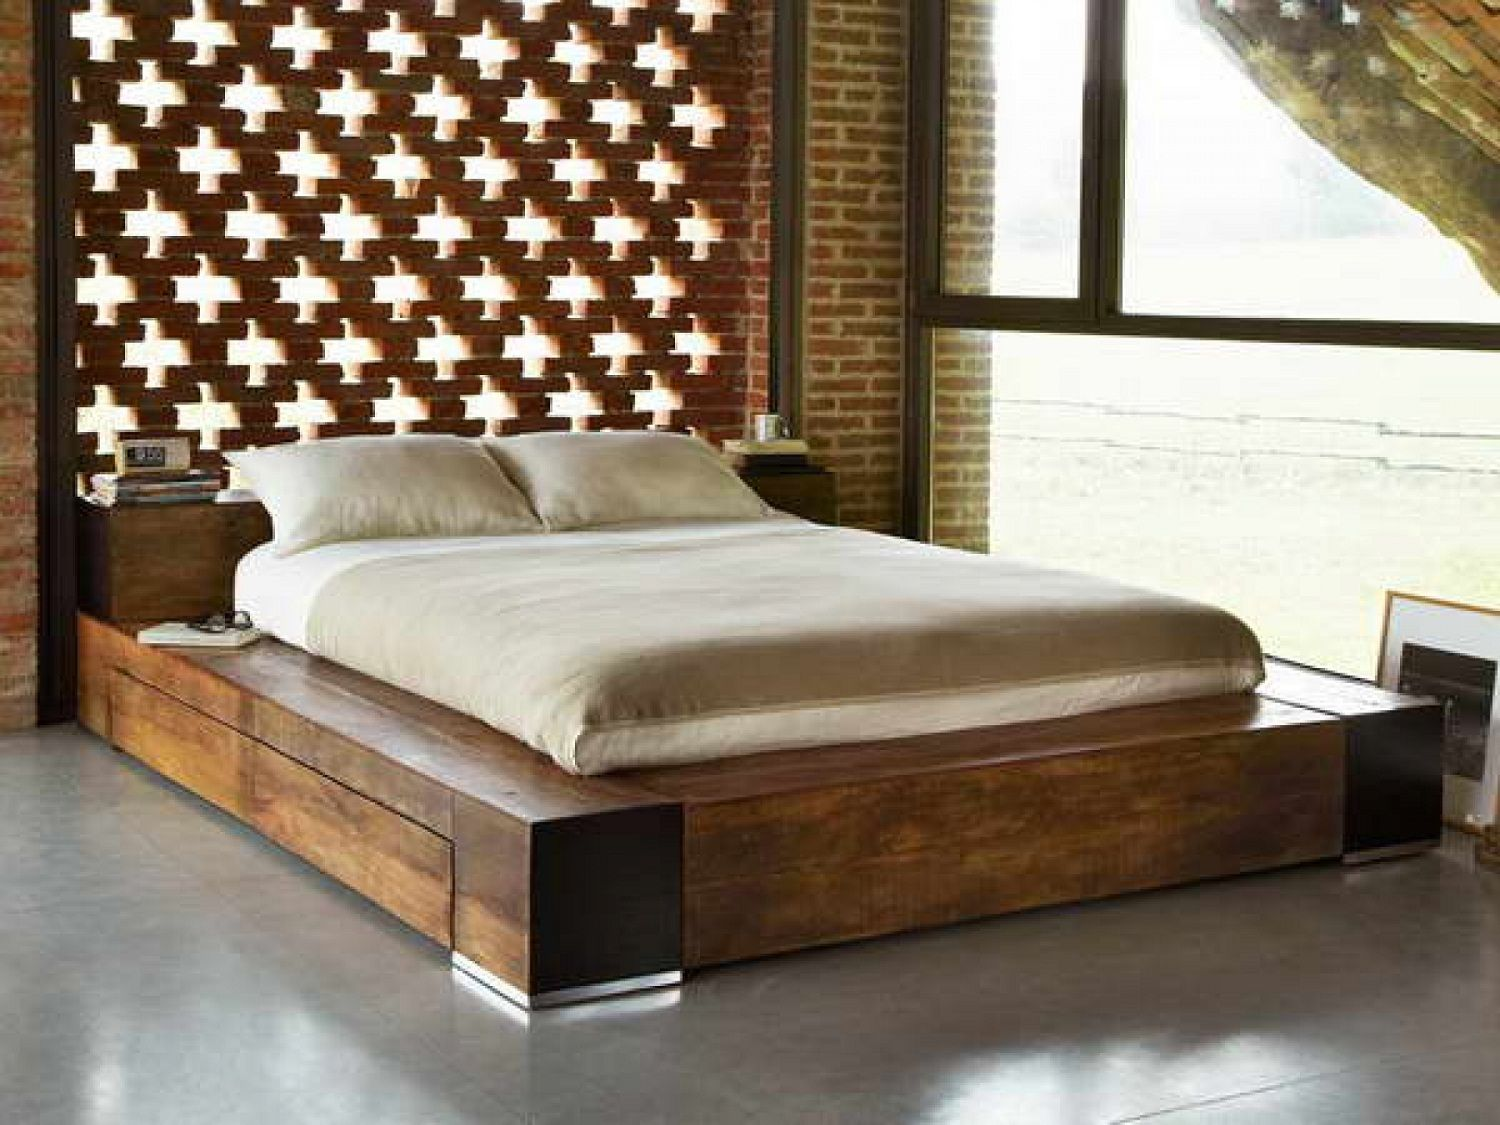 Bedroom Diy Custom Low Profile Platform Wooden Bed Frame With Drawer And Low Headboard Storage For Luxury Wooden Bed Wooden Bed Frames Bed Frame With Storage